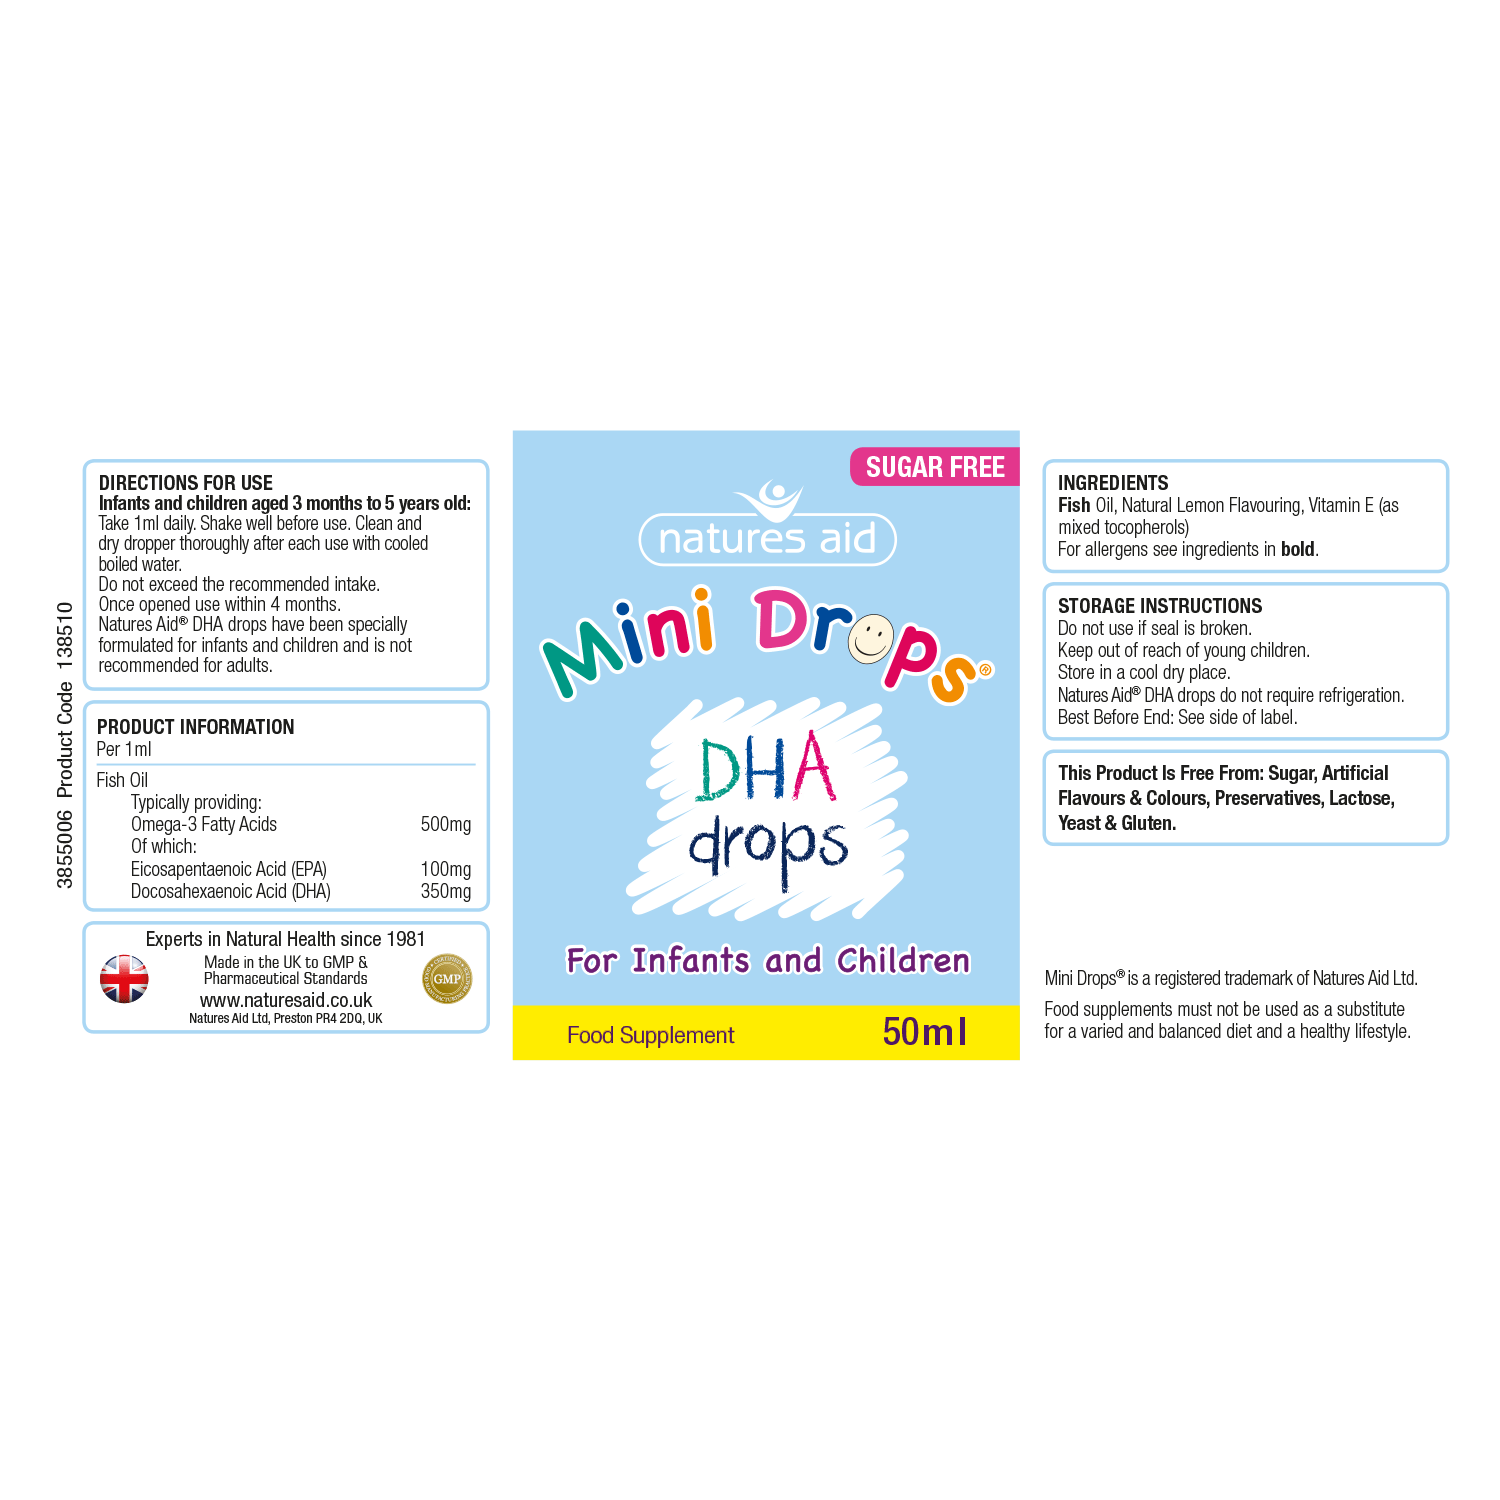 Natures Aid (3 Months-5 Years) Dha Mini Drops For Infants & Children